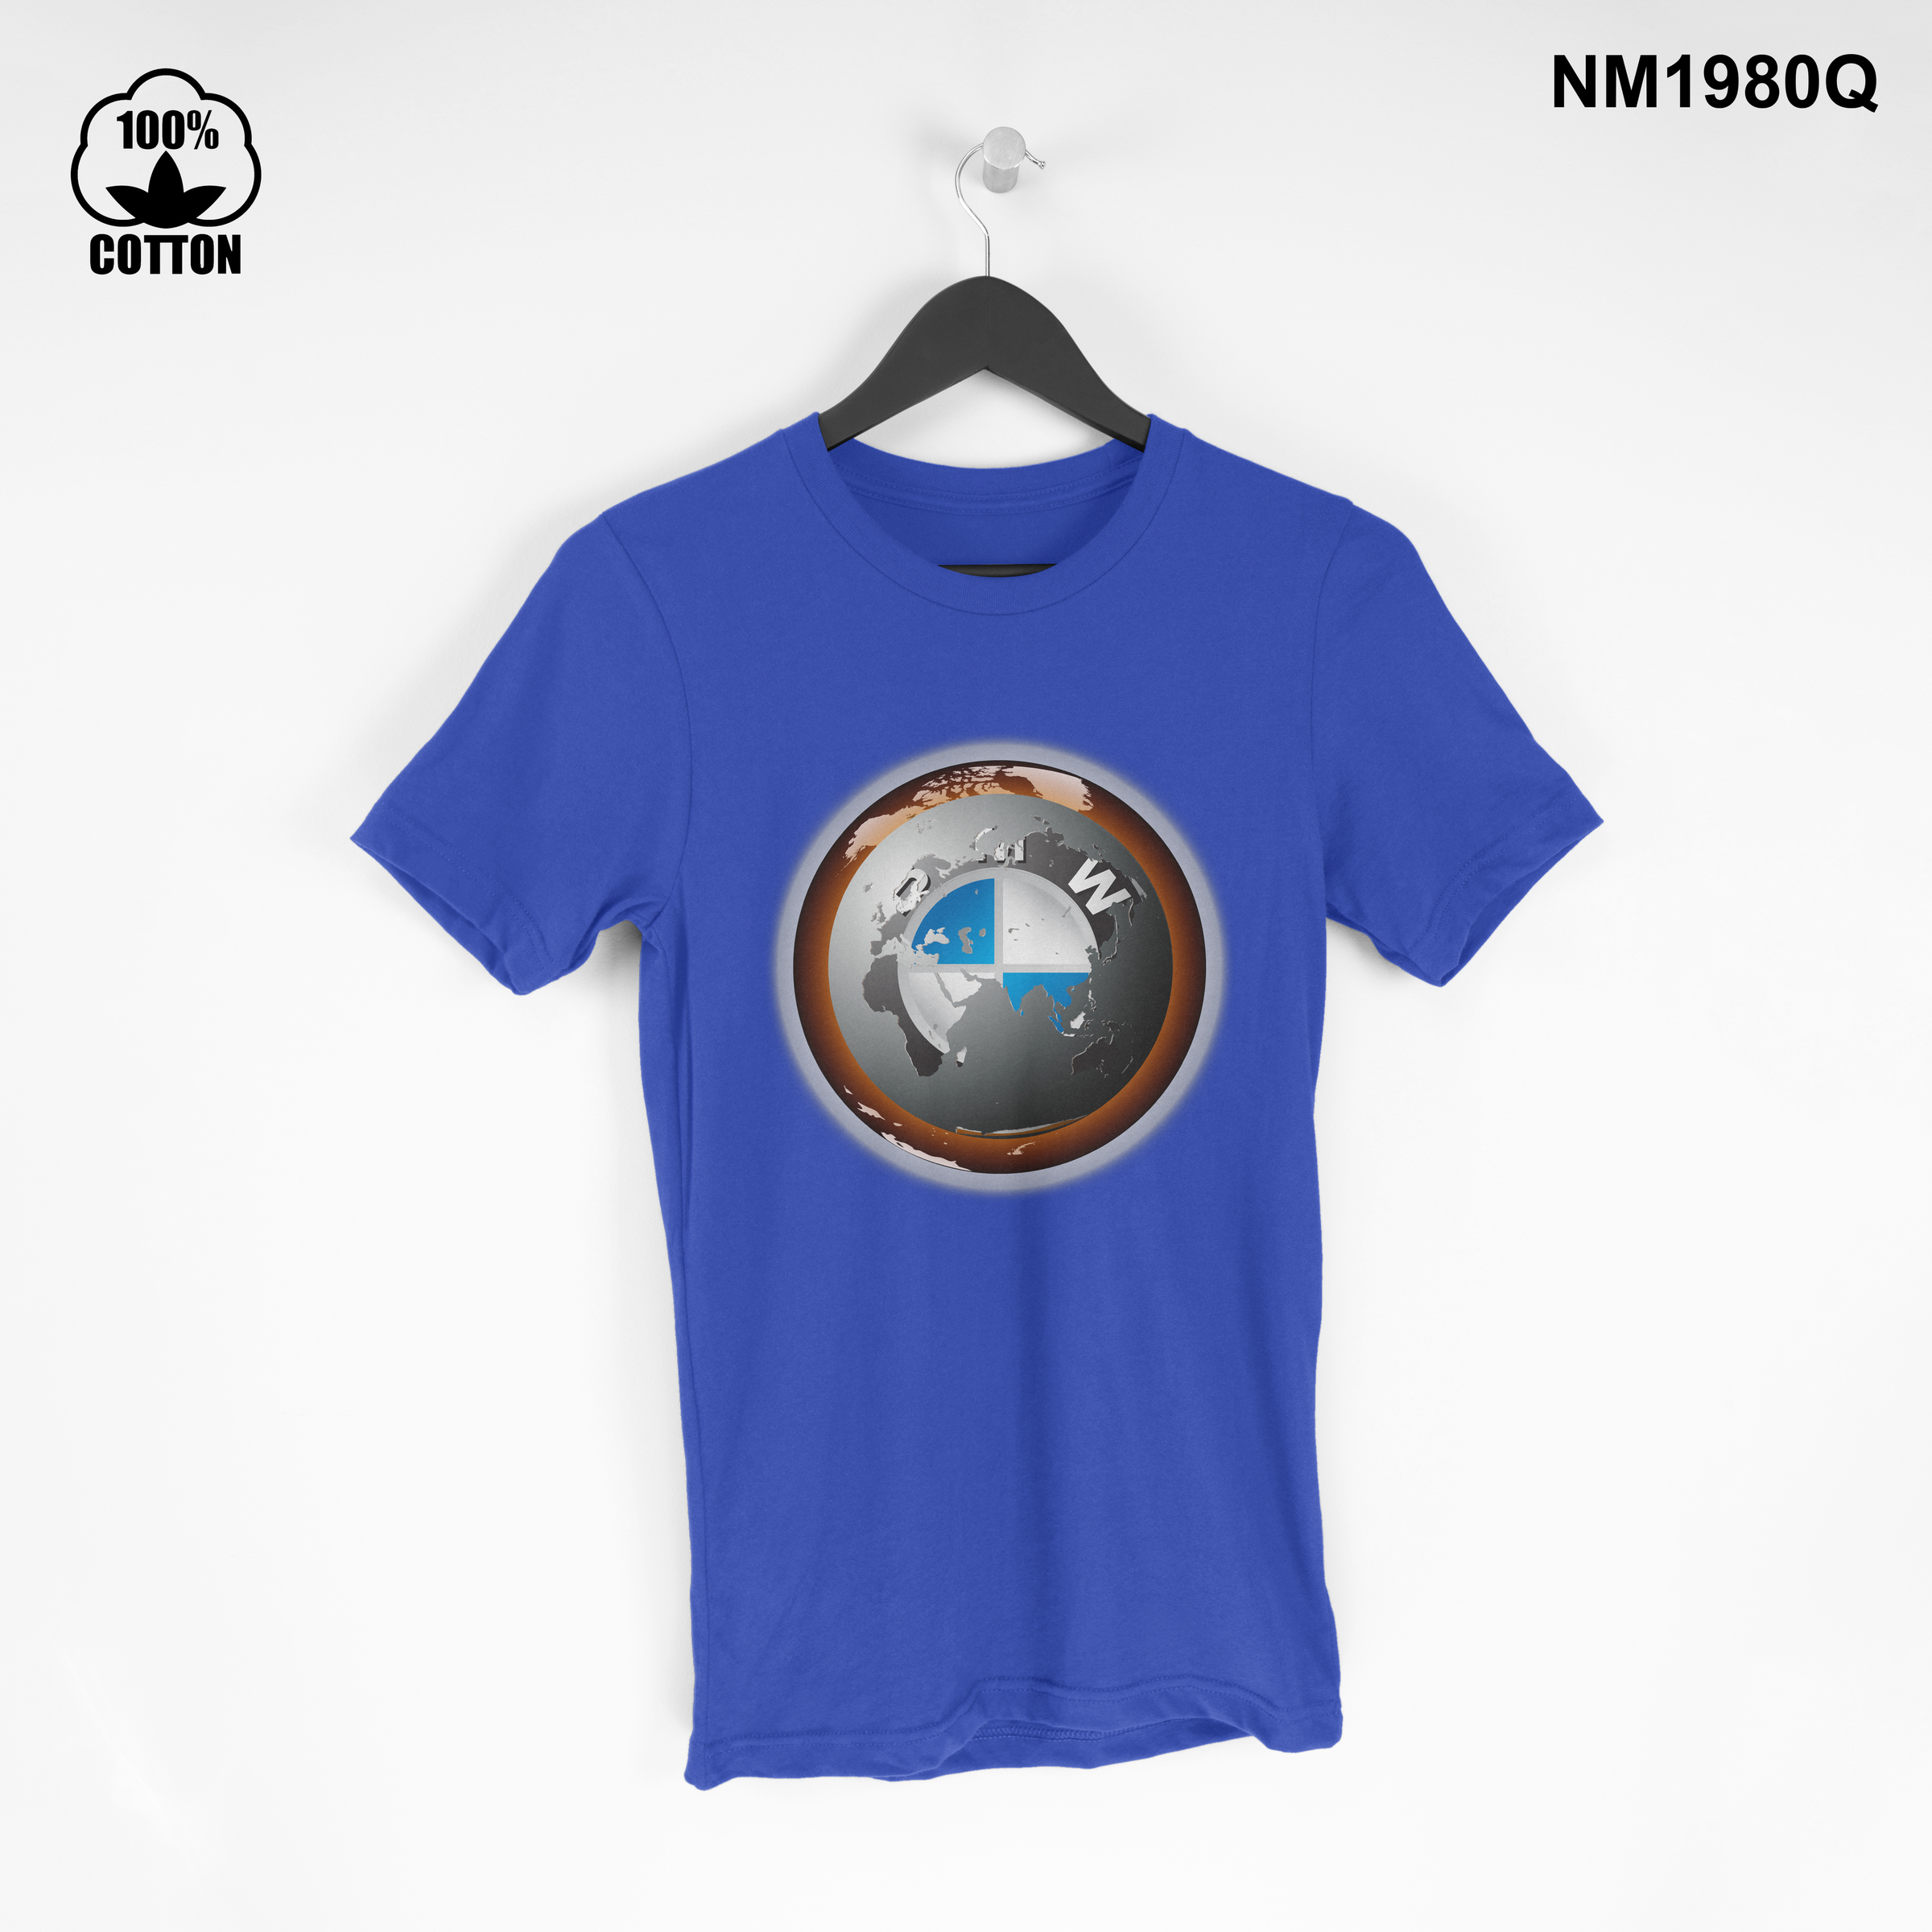 1.31 new item 2019 bmw in the world t Shirt Tee Unisex dodger blue.jpg